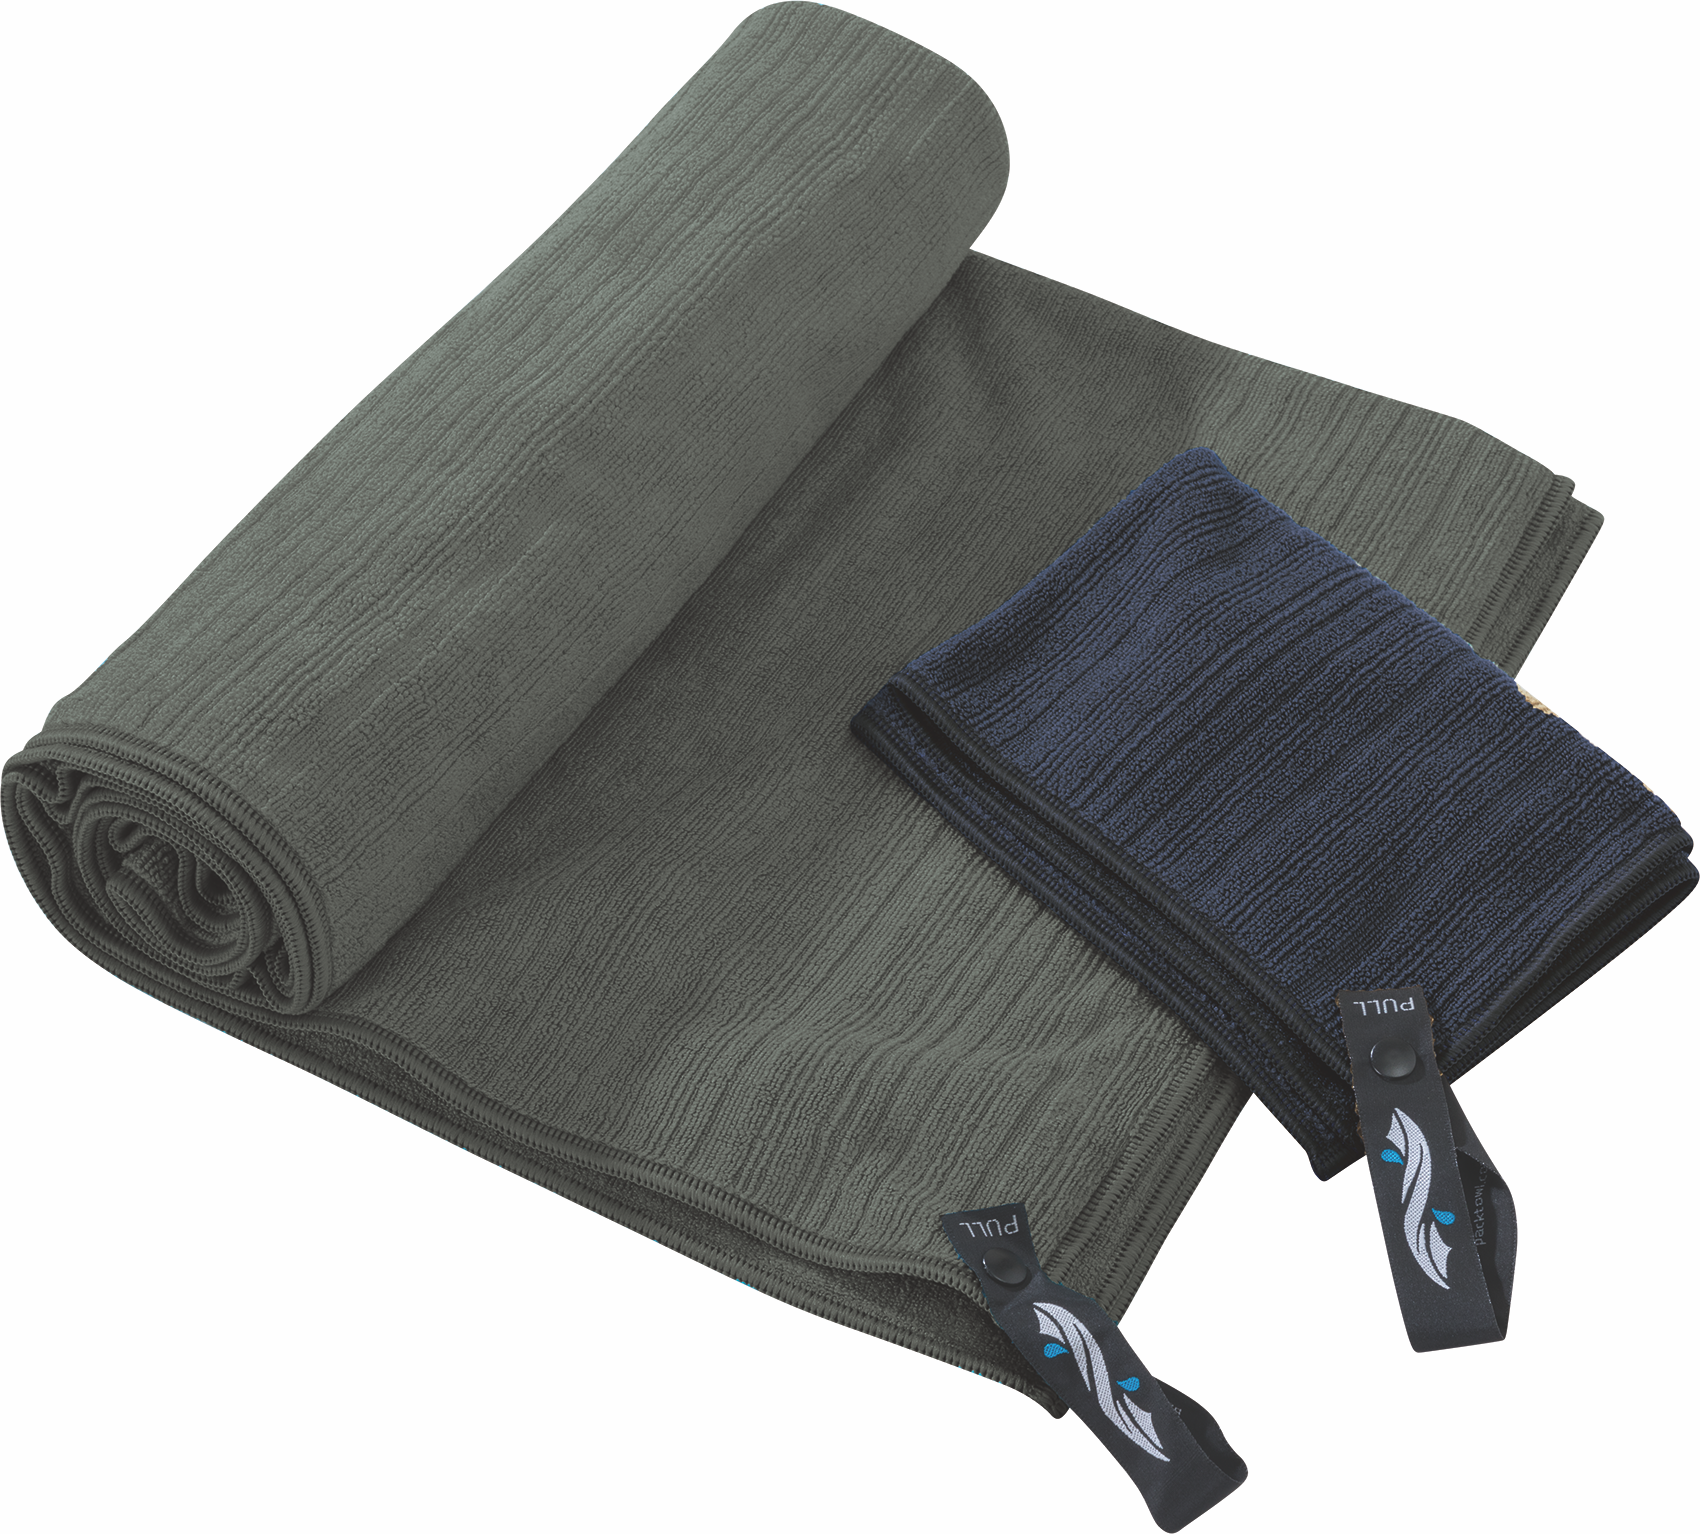 PackTowl Luxe Towel Set - $29.95Though we assume every one of you outdoorsy people already has this almost magical quick-drying towel, we're adding this one in here to remind you that one of your friends or family members needs it too. Packable, fast drying, light, soft, odor-controlled, (we could go on), the PackTowl is a travel and camping necessity. Plus, even when you're in the city, it's easy to throw into your gym bag in case you're a member of one of those